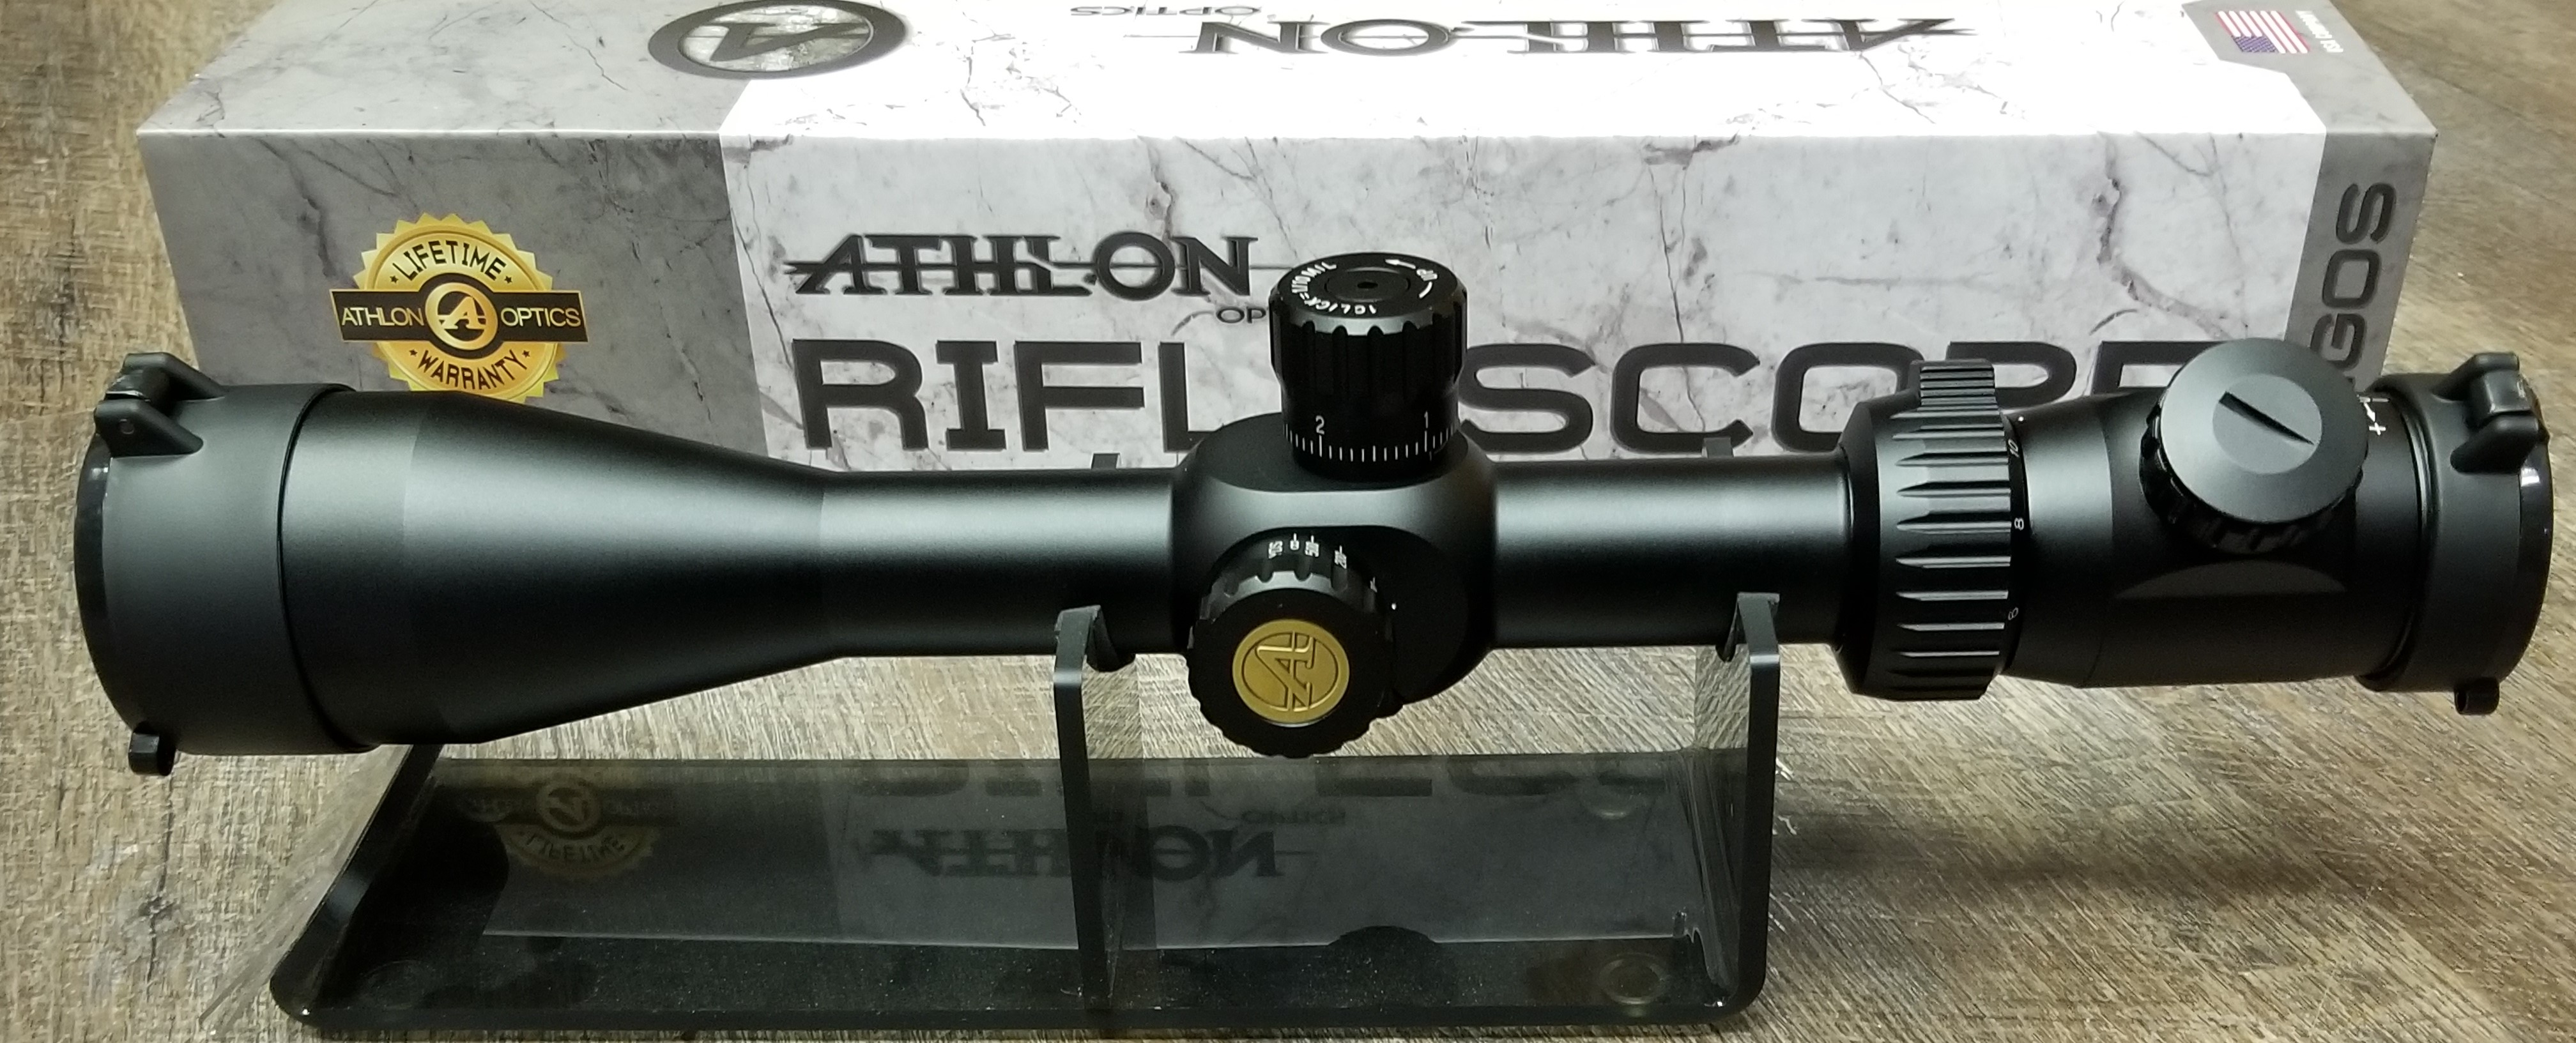 ffp rifle scope